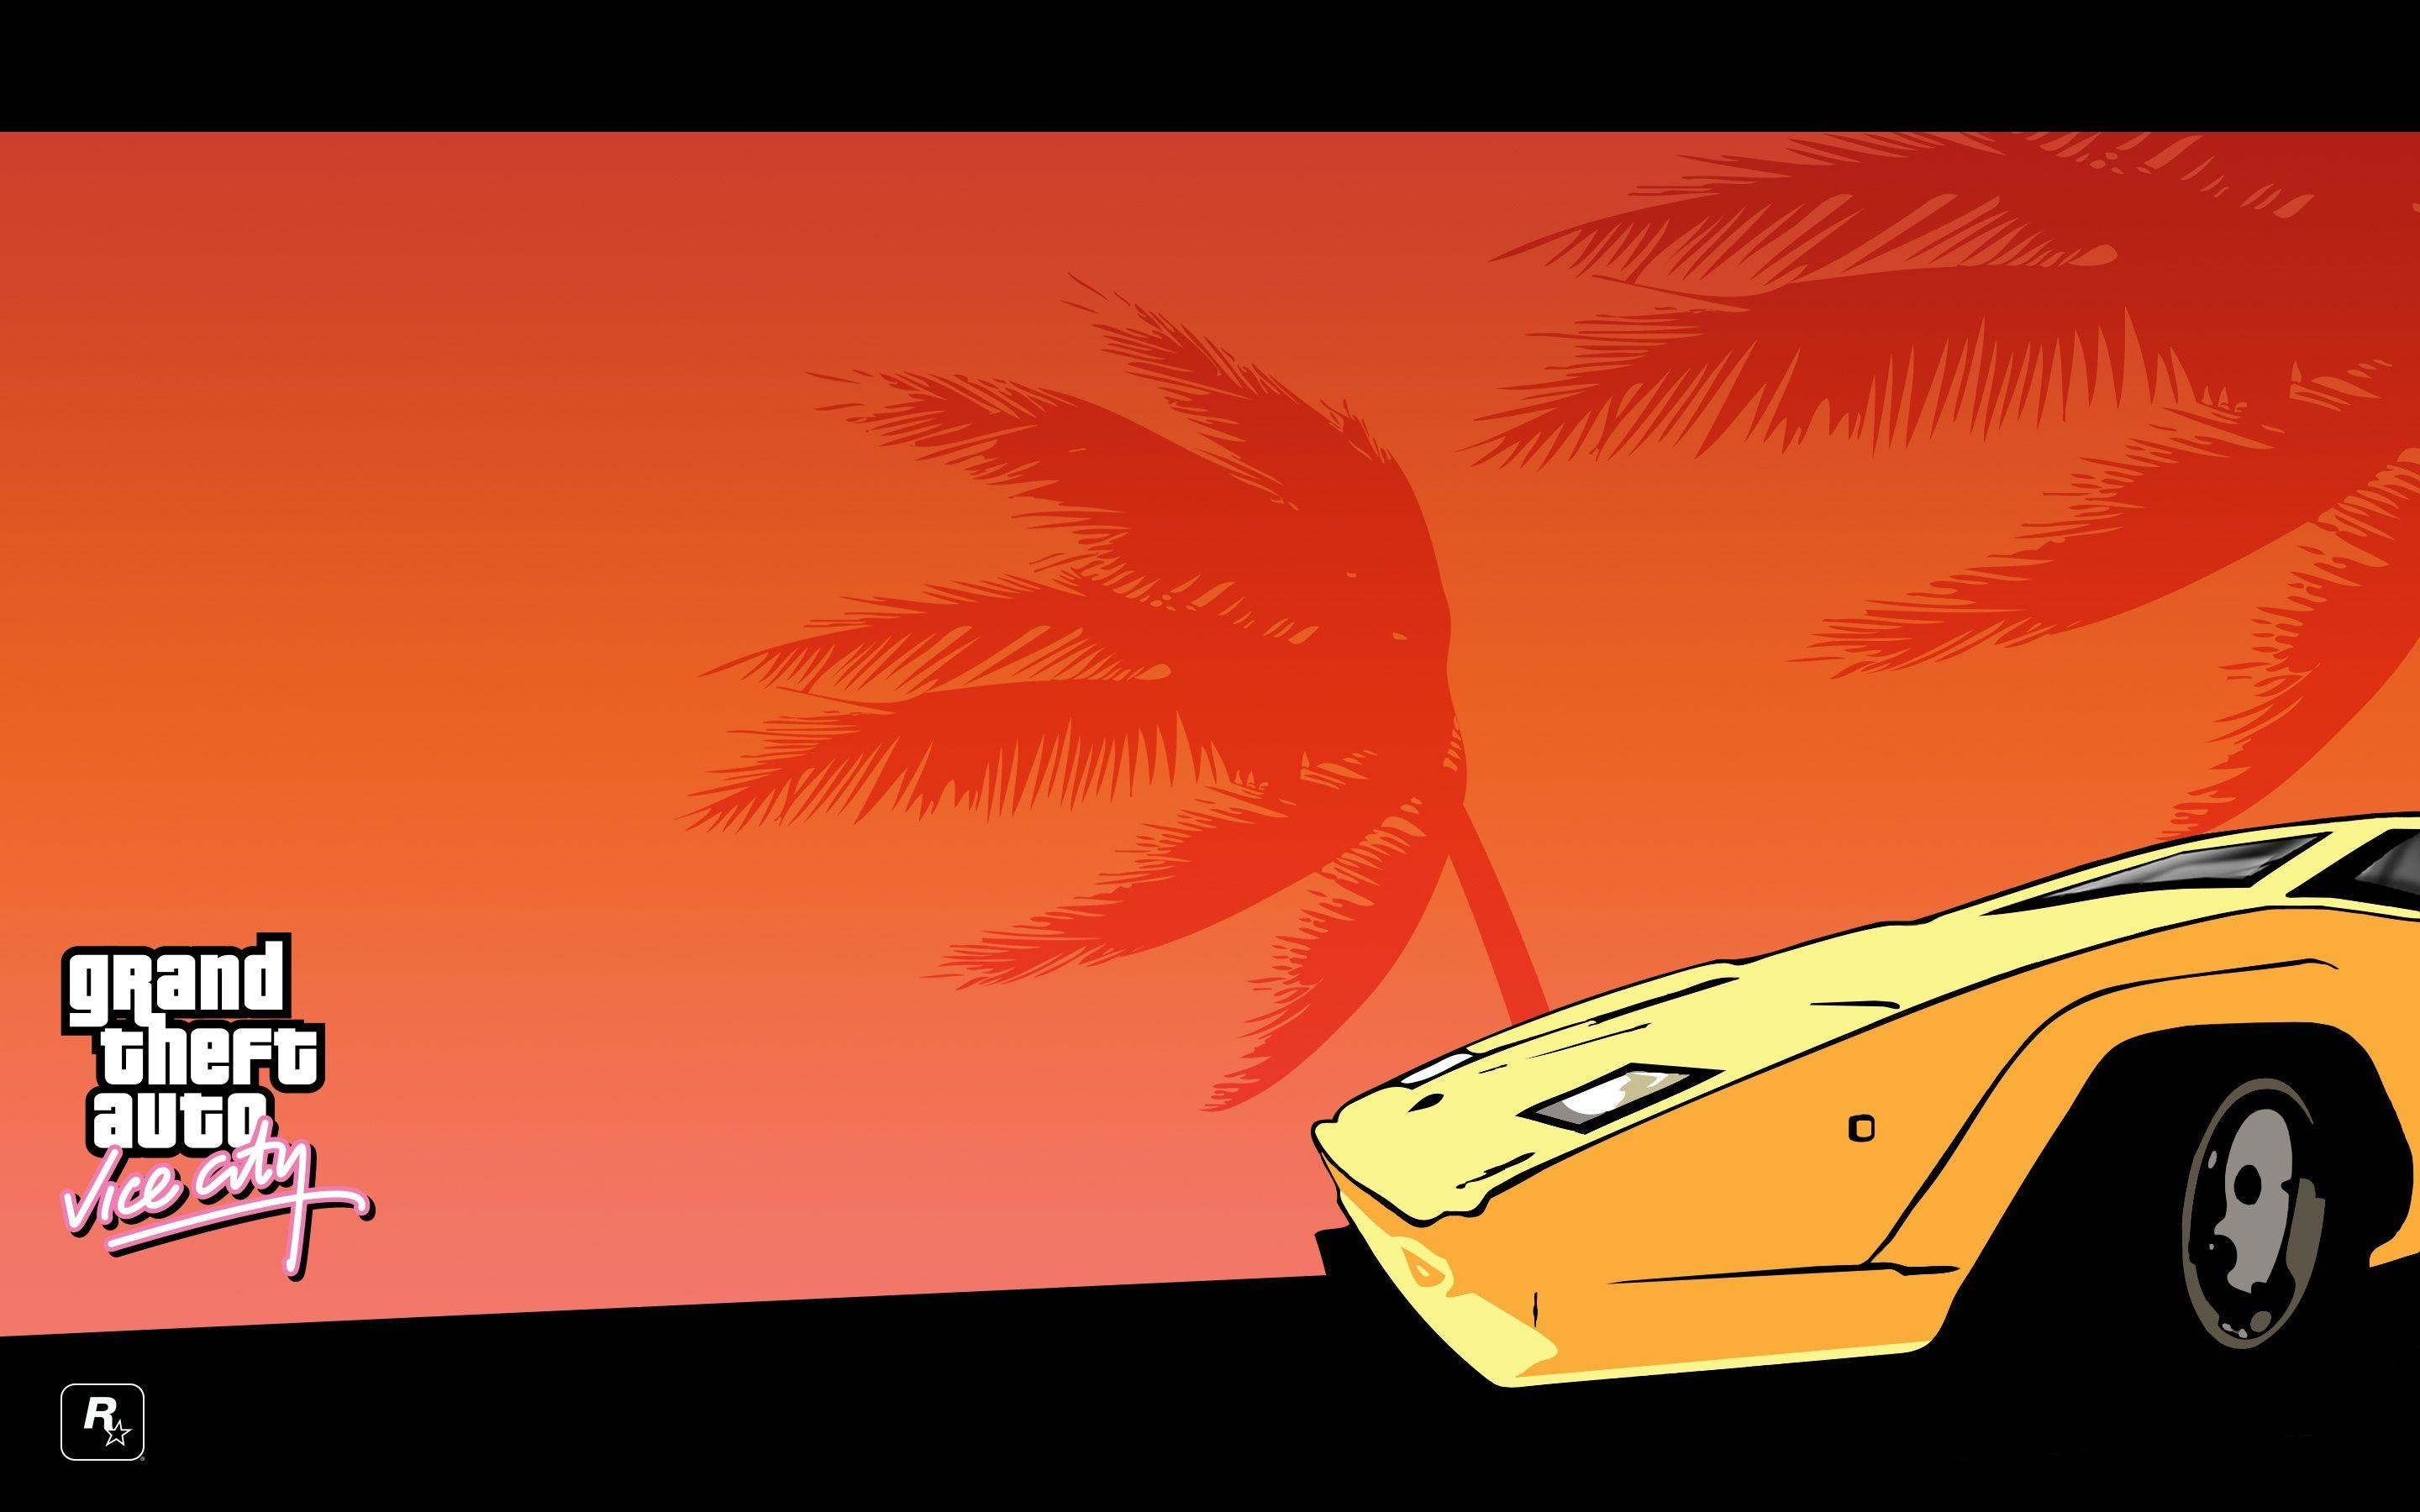 2880x1800 Grand Theft Auto Vice City Wallpapers, Grand Theft Auto Vice City .